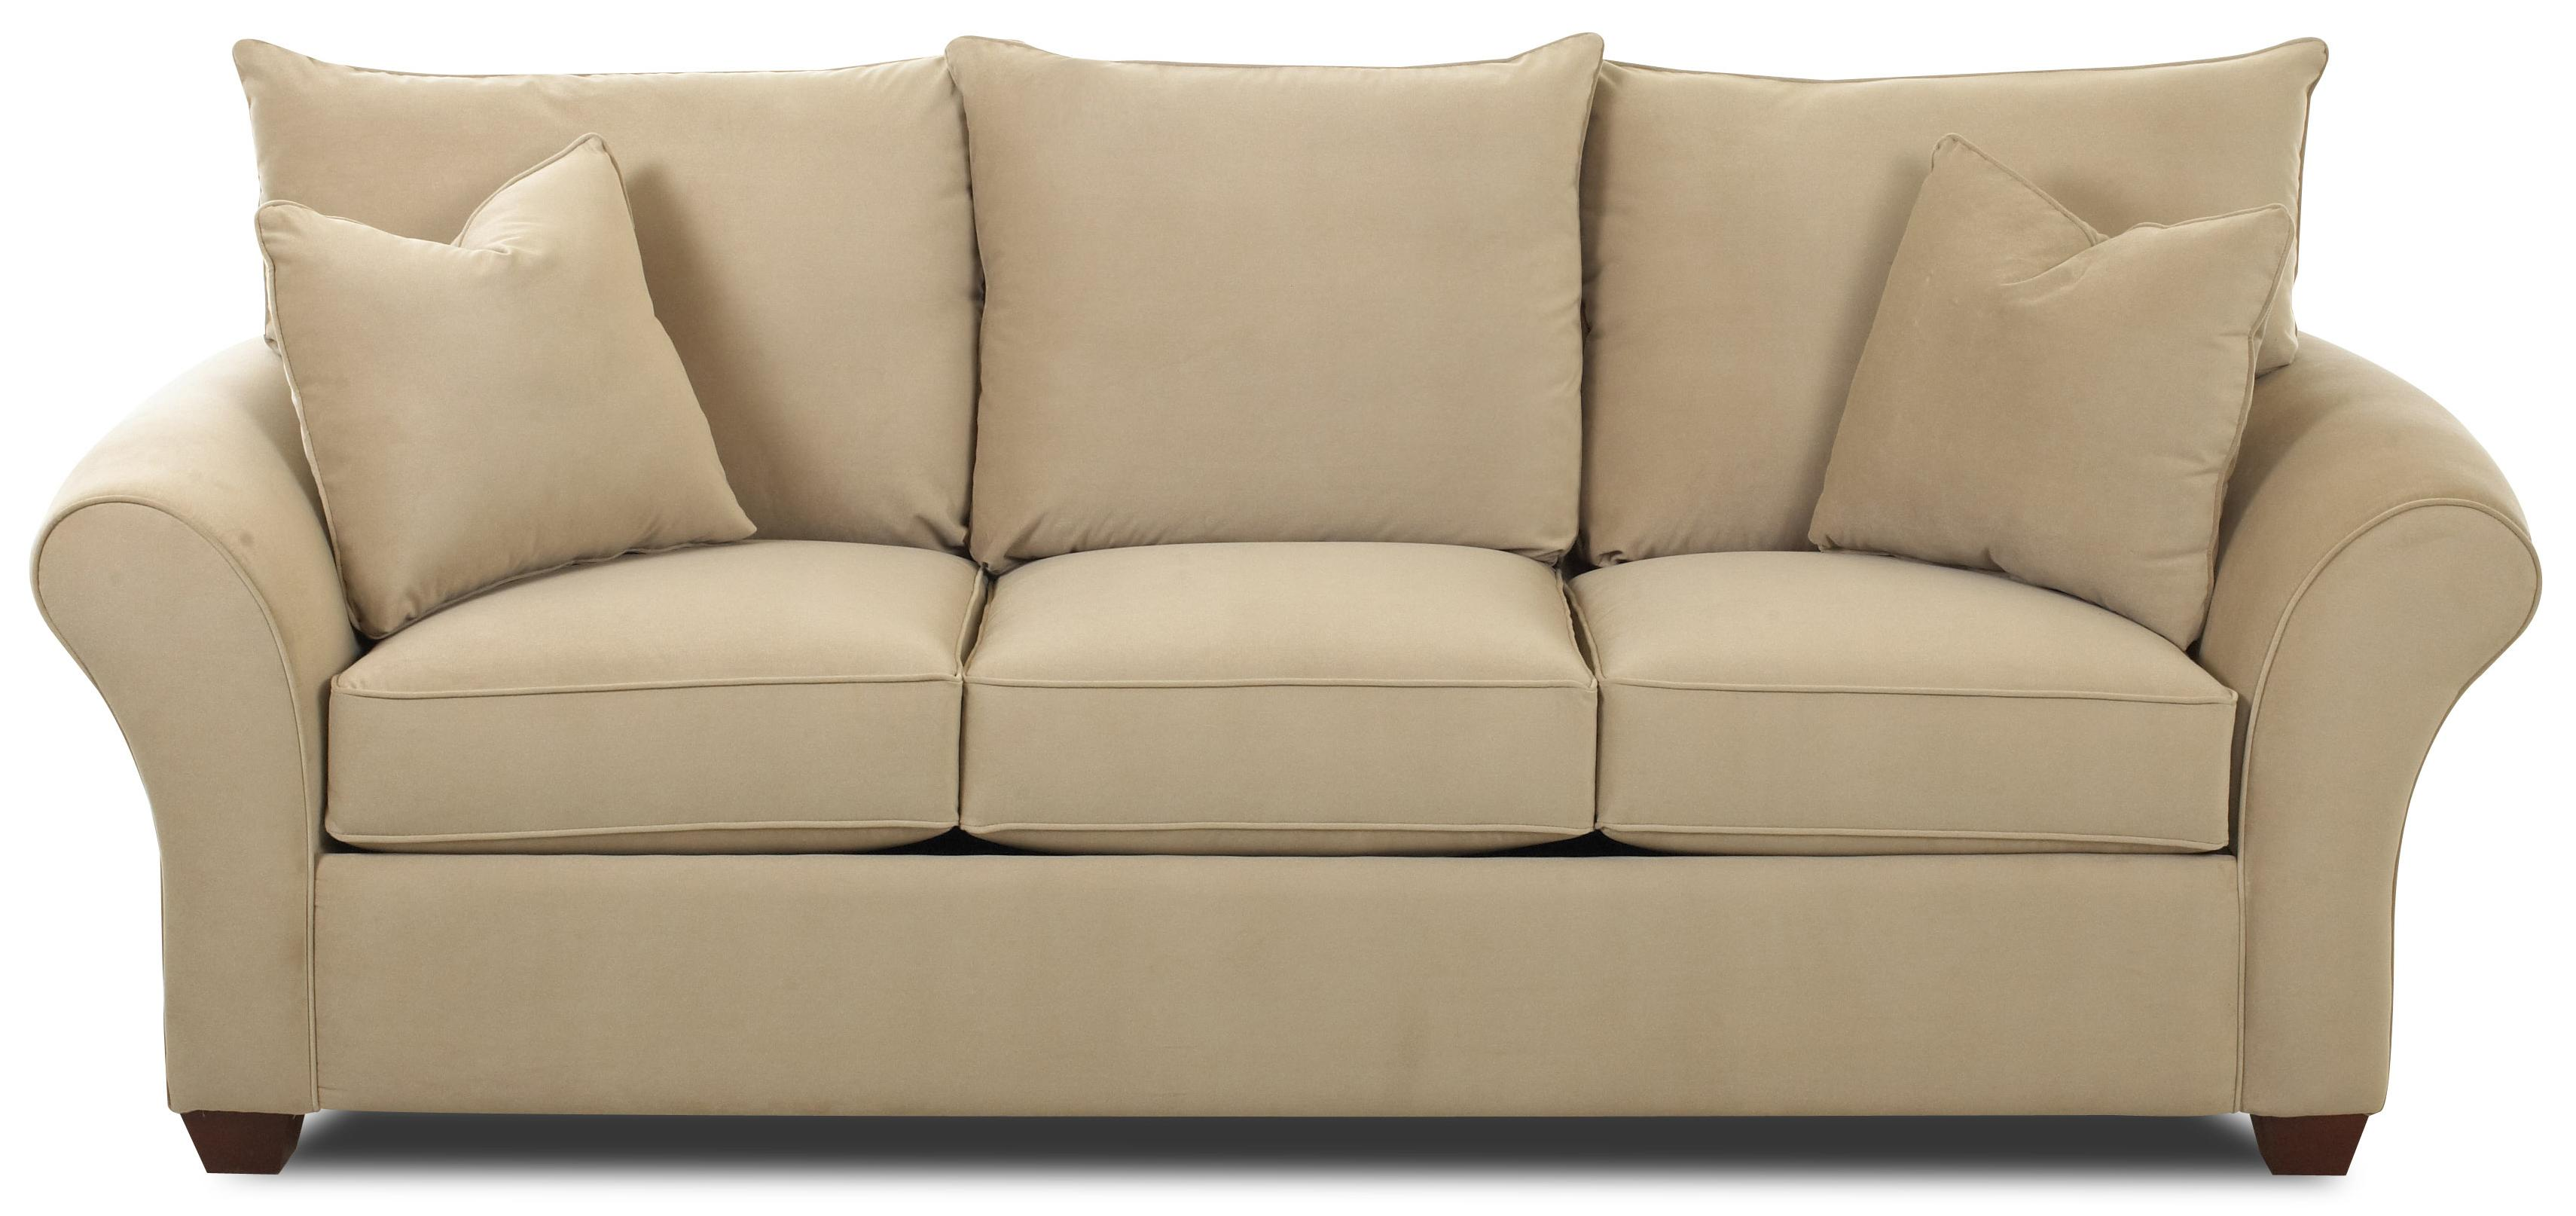 Comfortable Couches the most comfortable couch | homesfeed